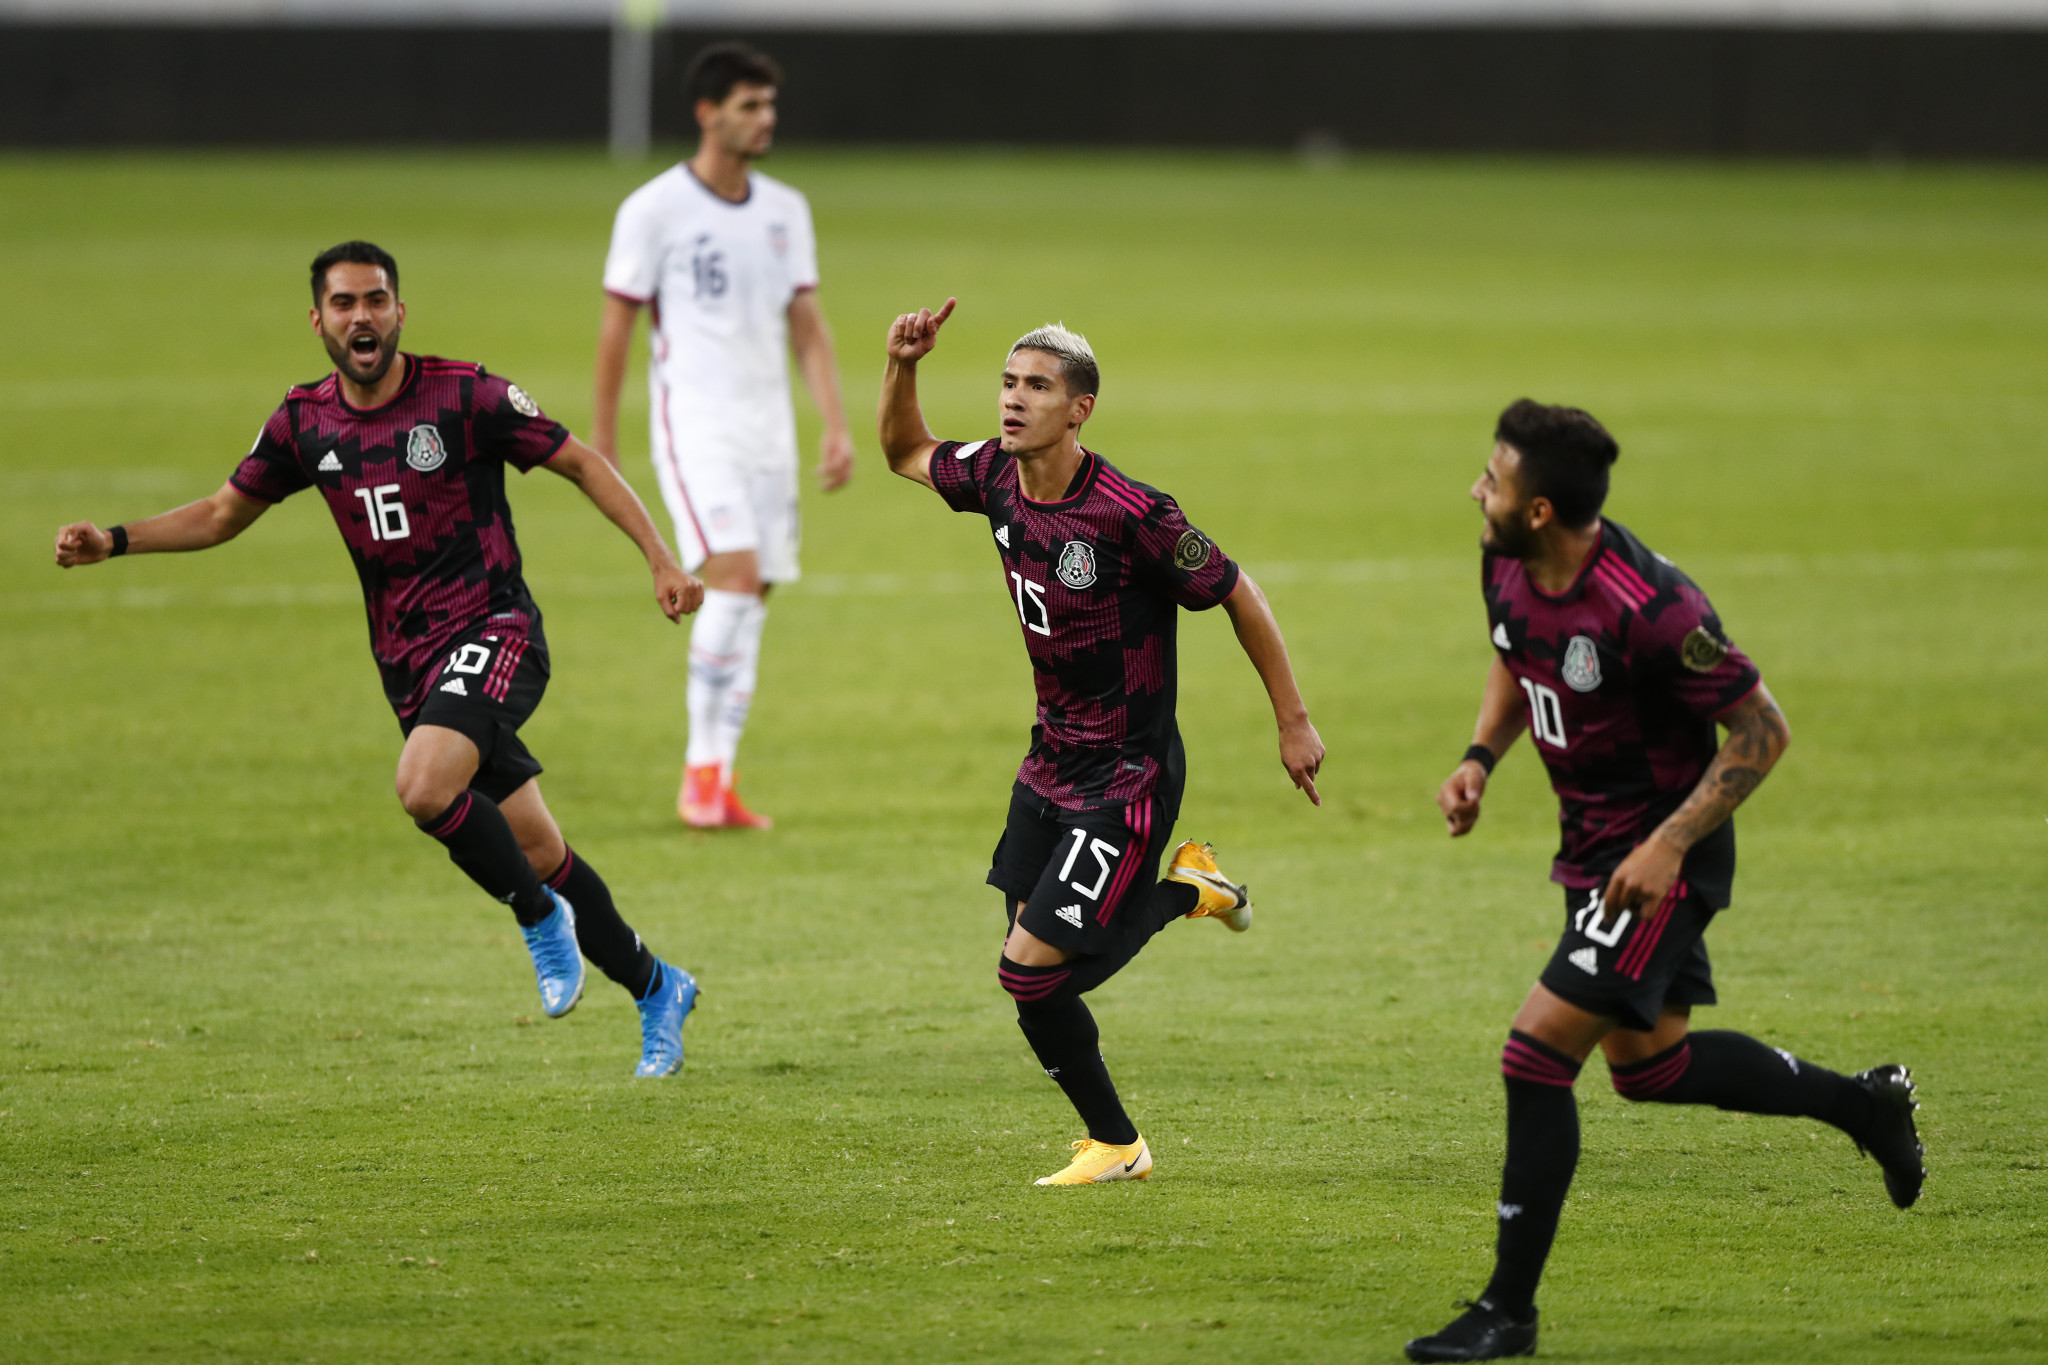 Mexico beat US to win Group A at CONCACAF men's Olympic qualifier